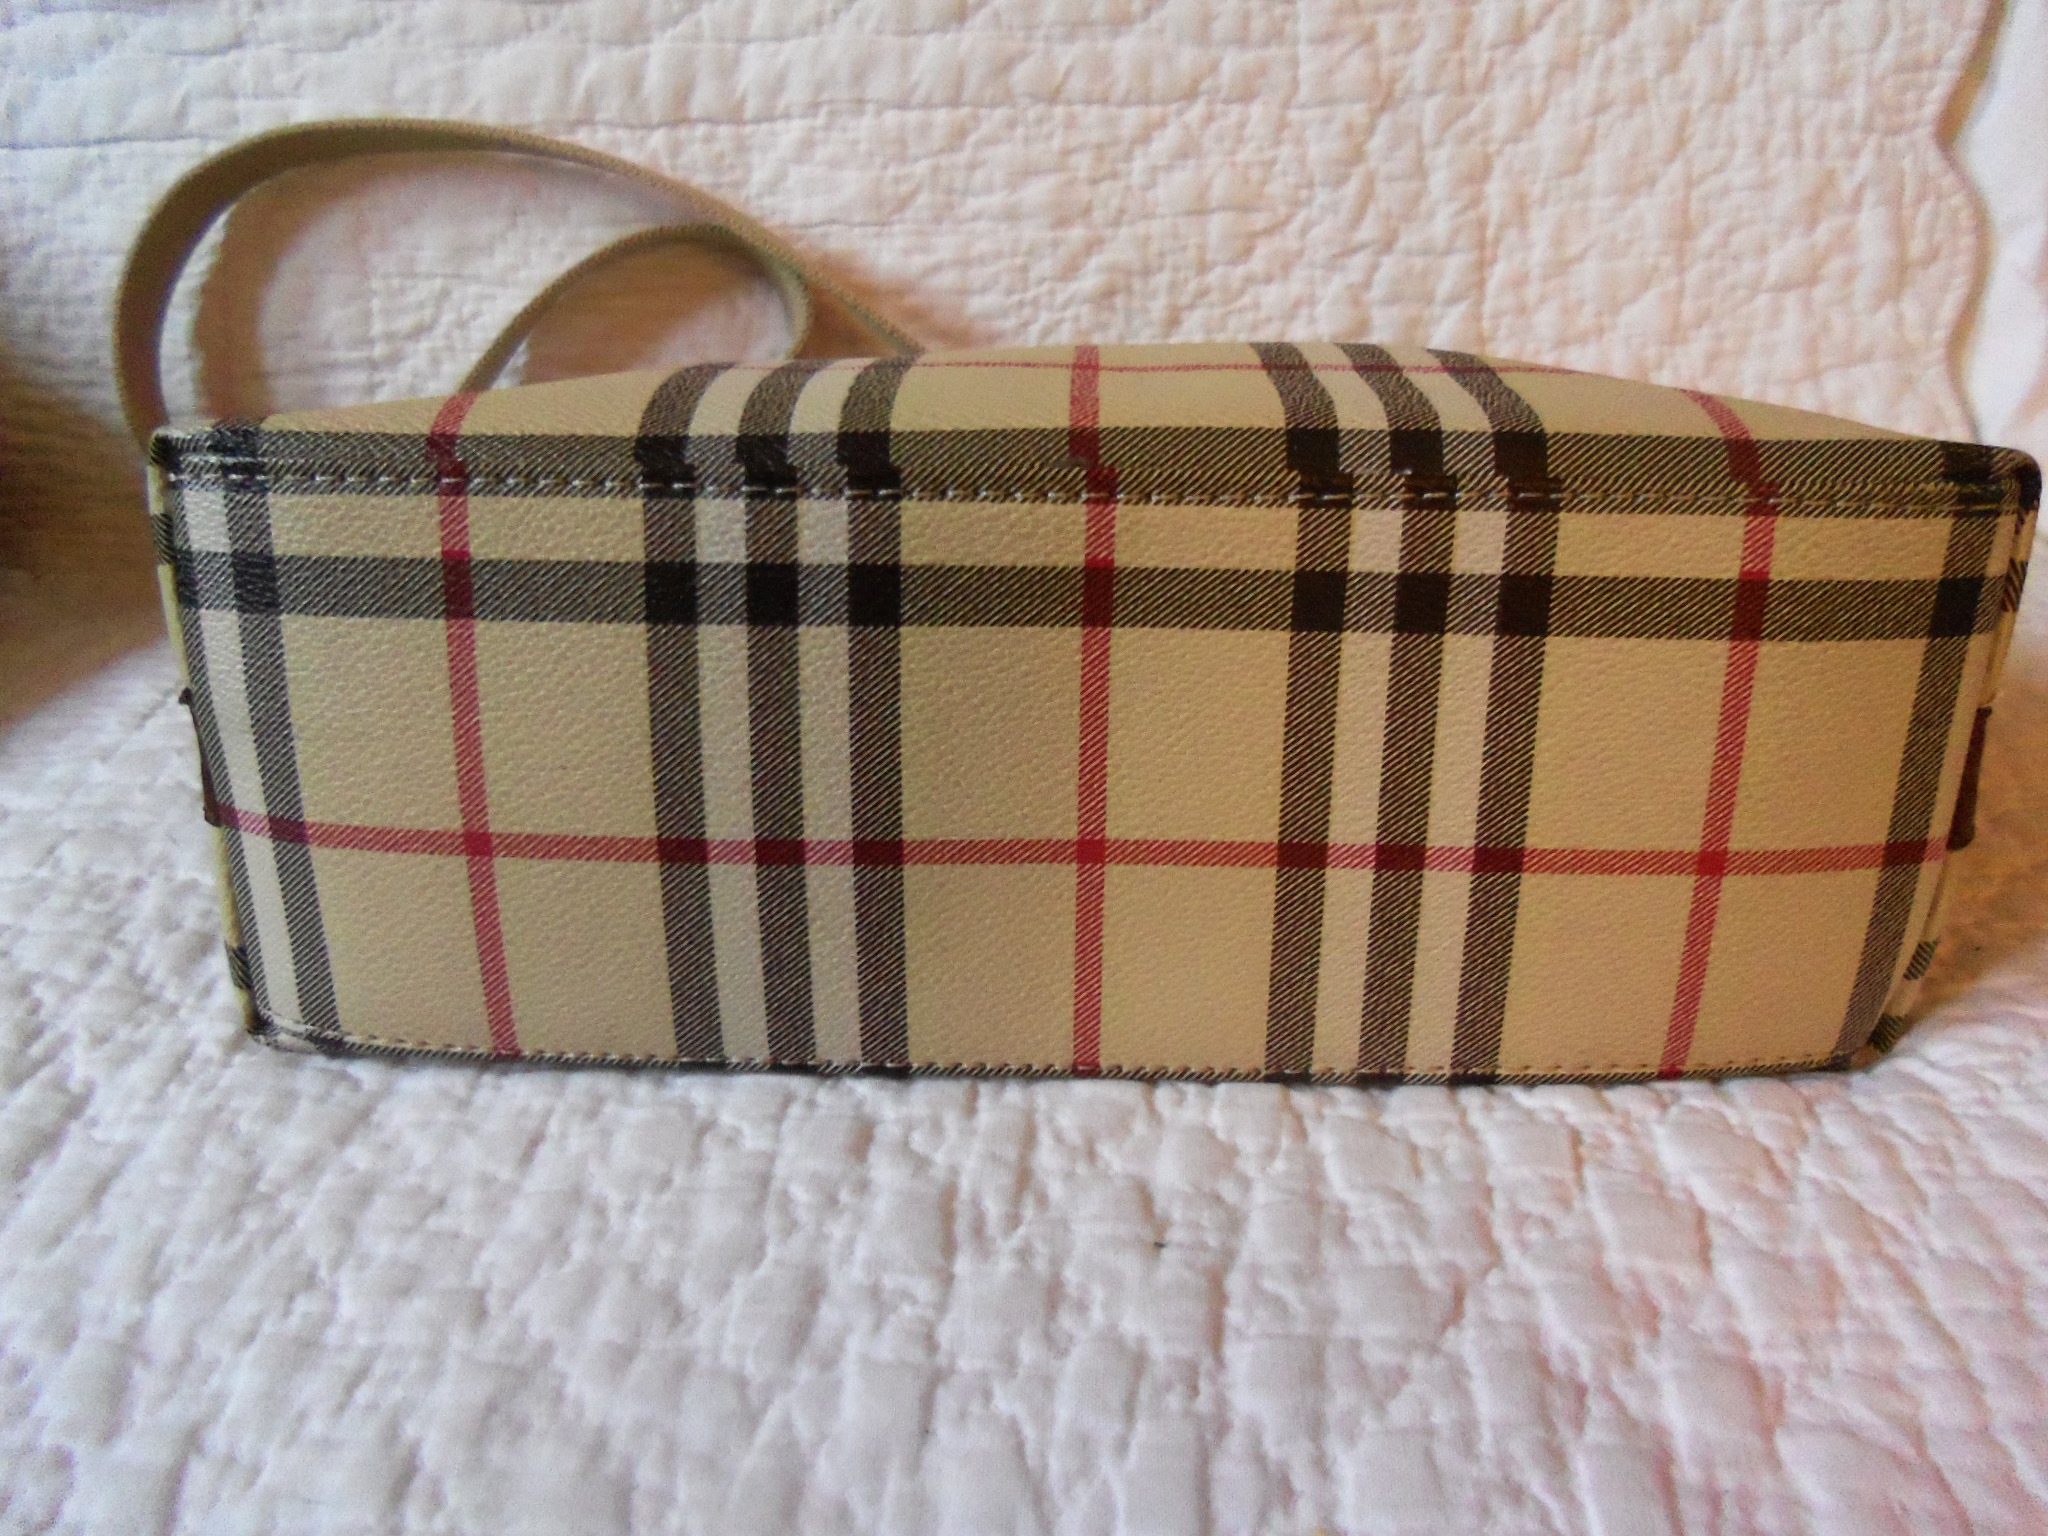 Do they make fake Burberry bags? - The eBay Community